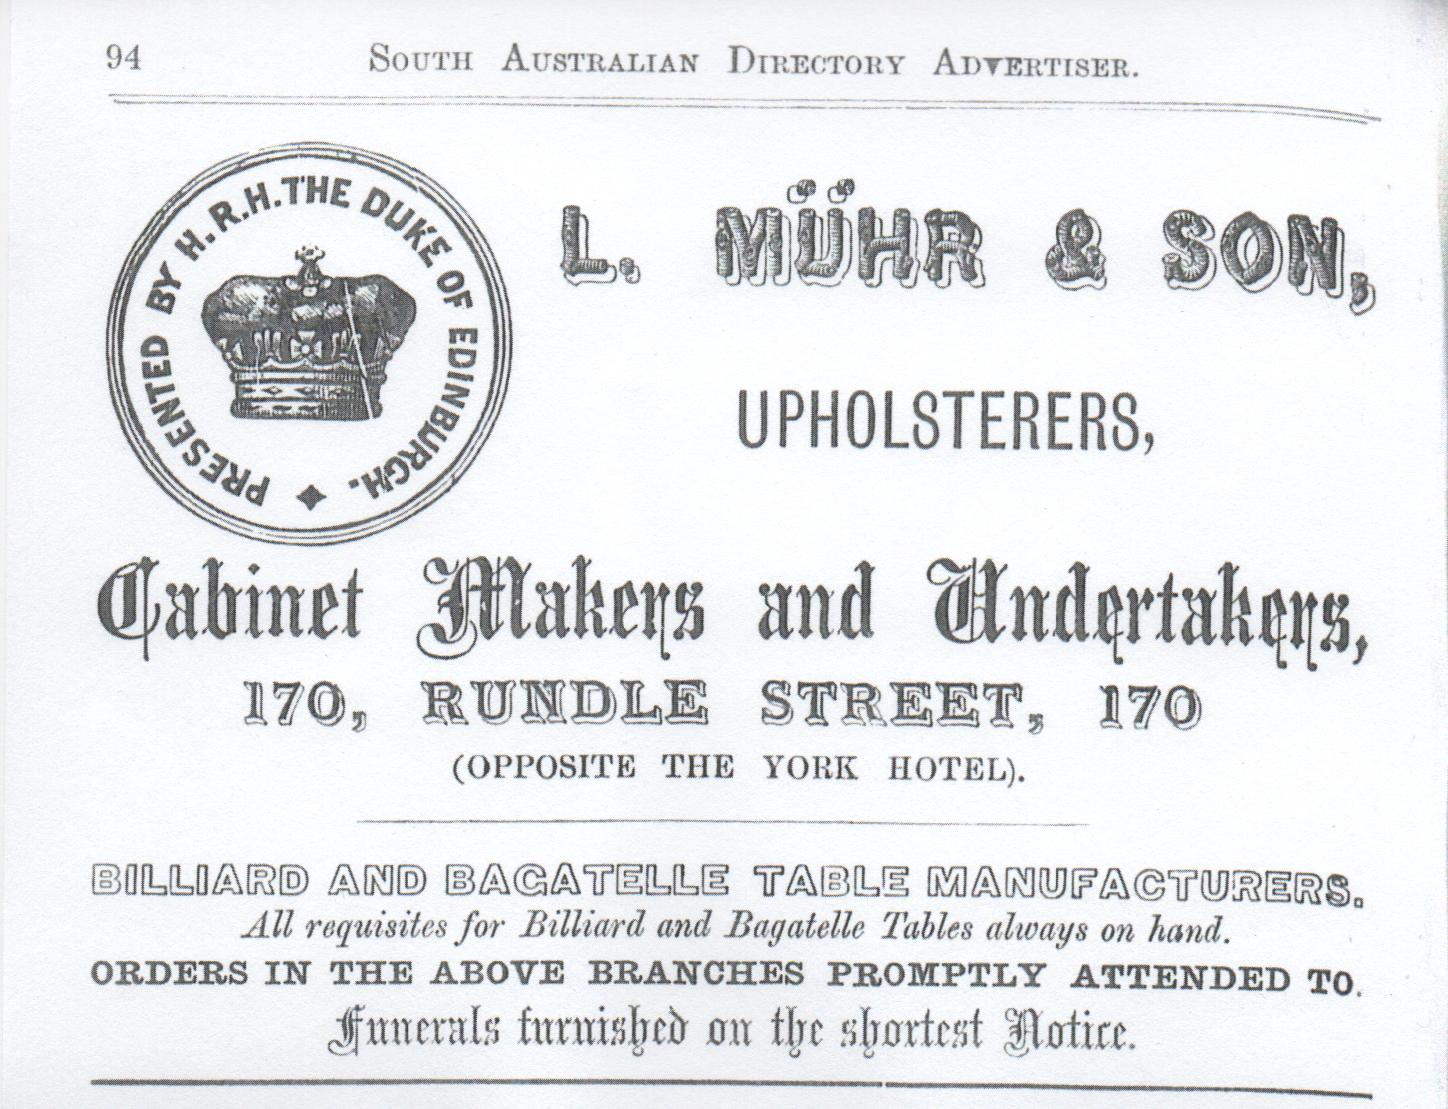 Advertisement from Adelaide Almanac & Directory for South Australian, 1876 by Josiah Boothby